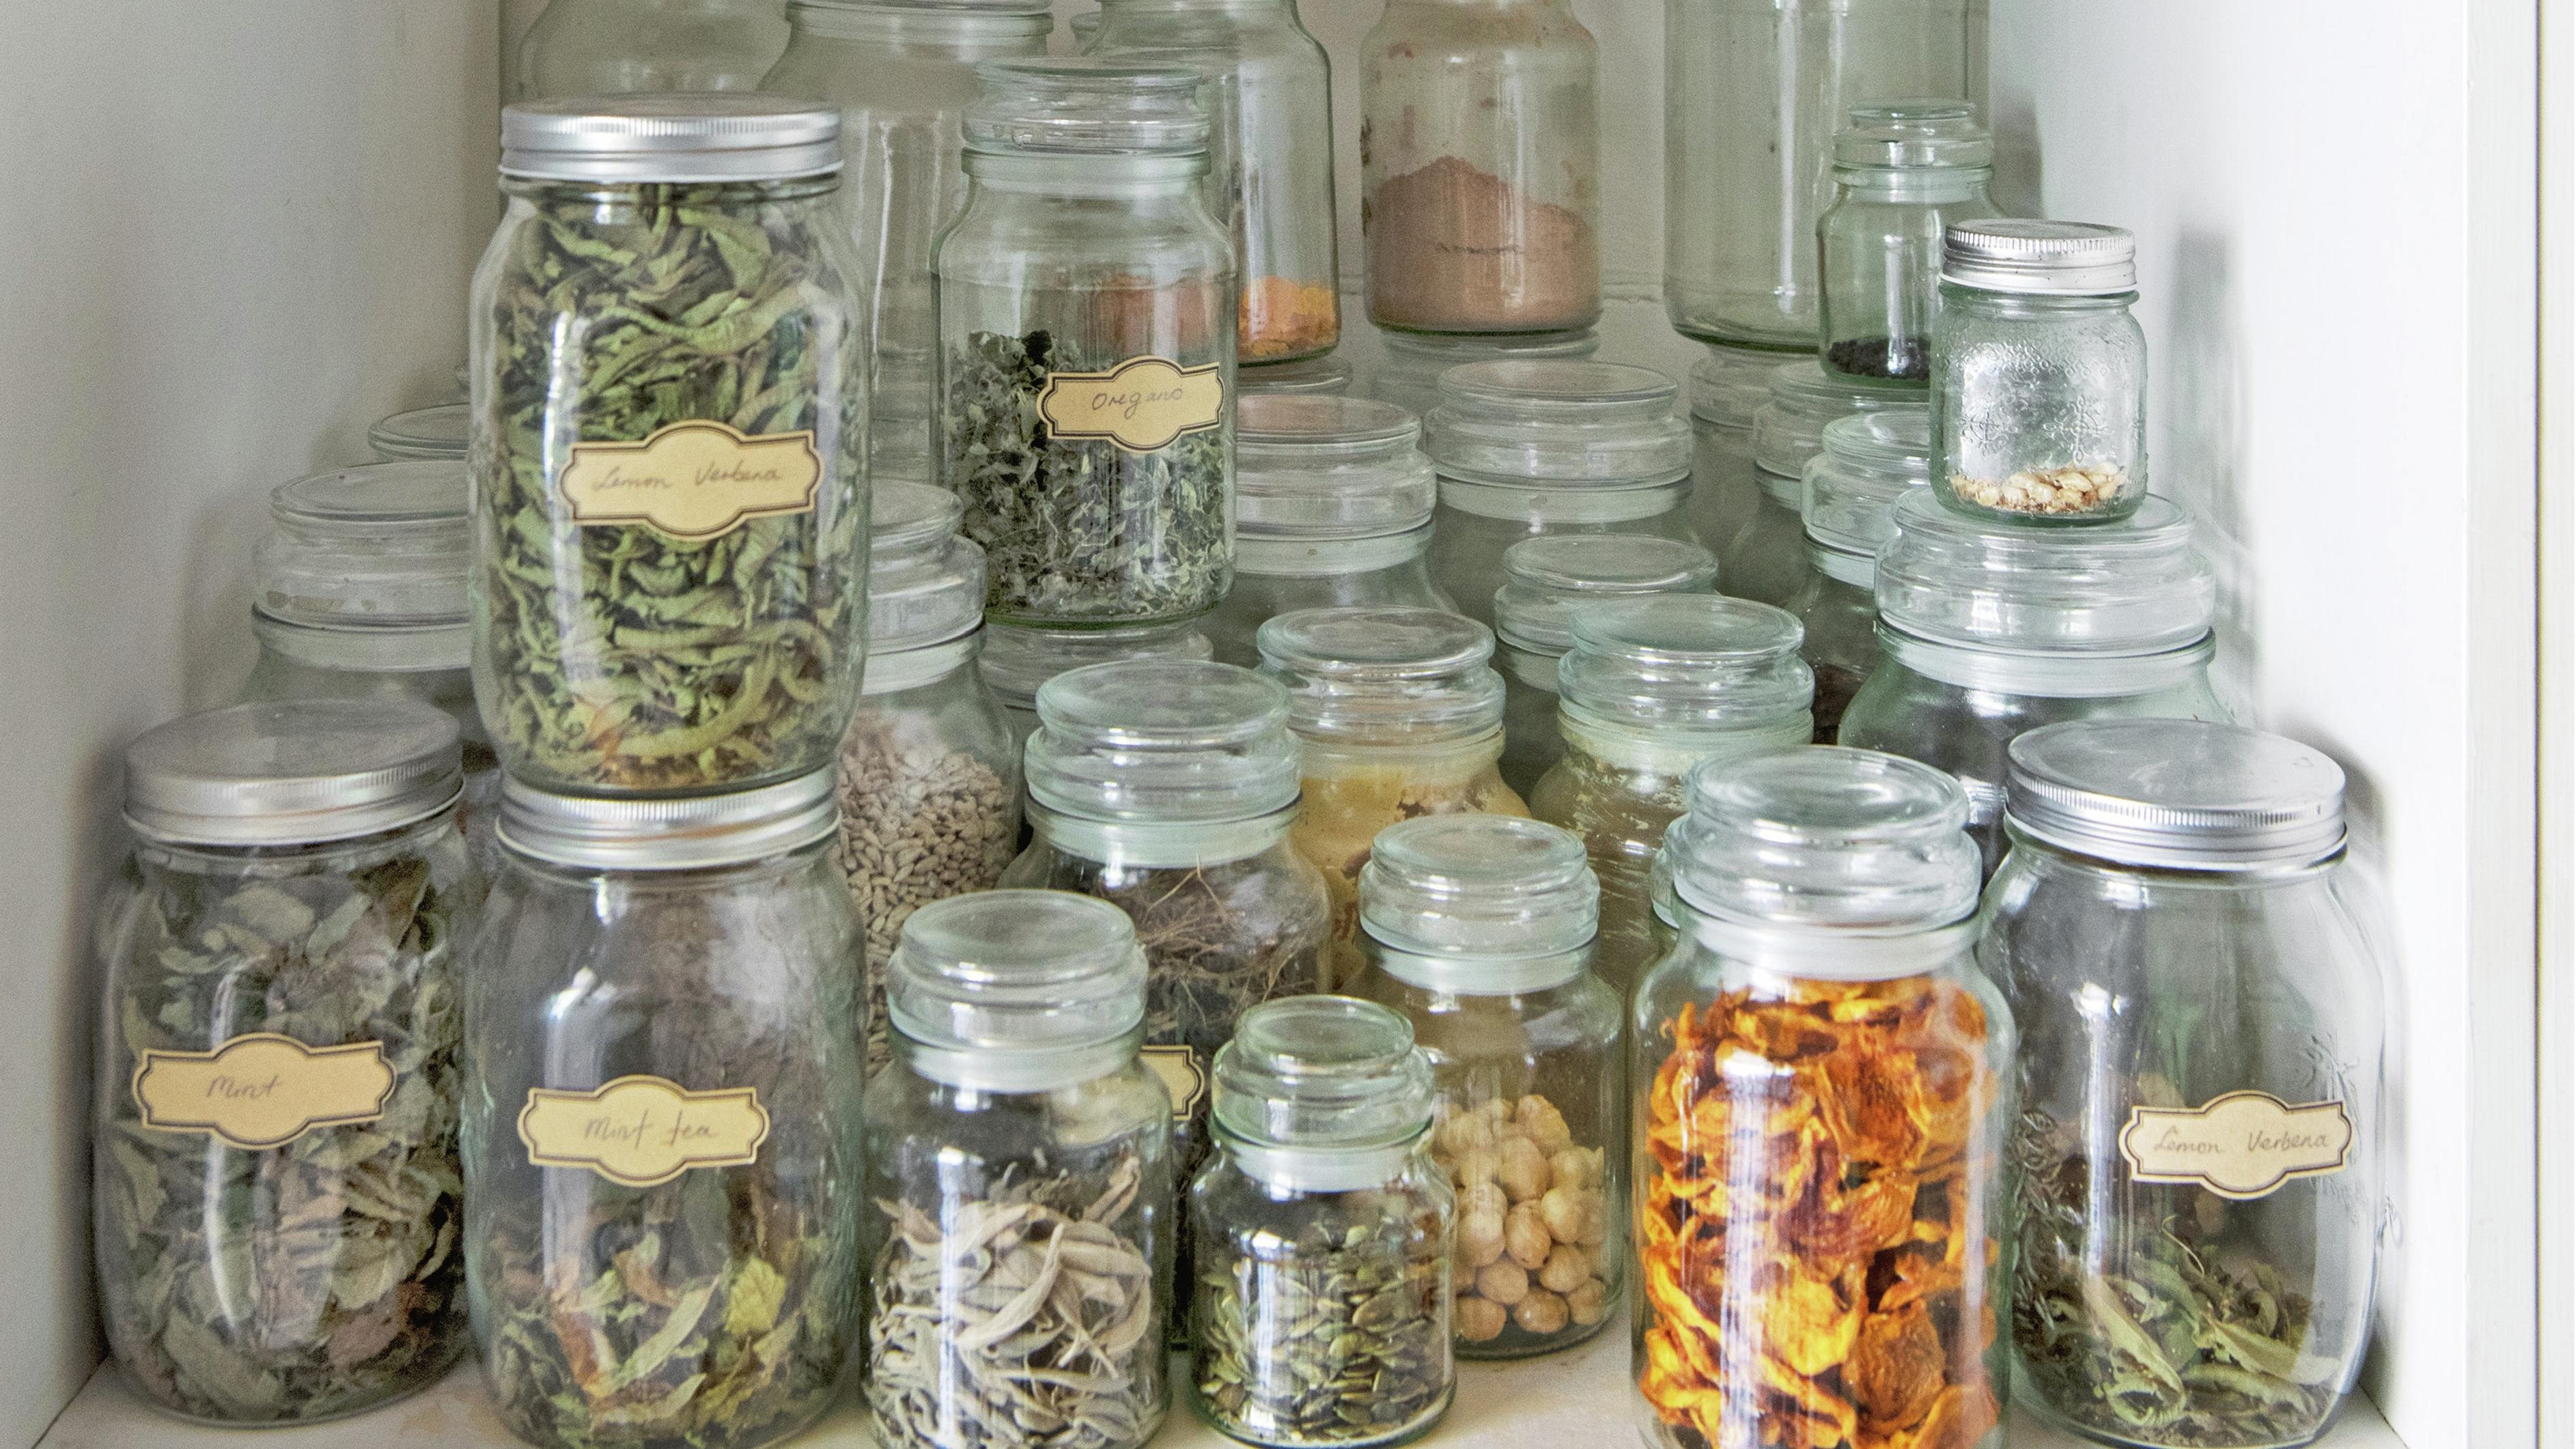 Assorted jars in a pantry.